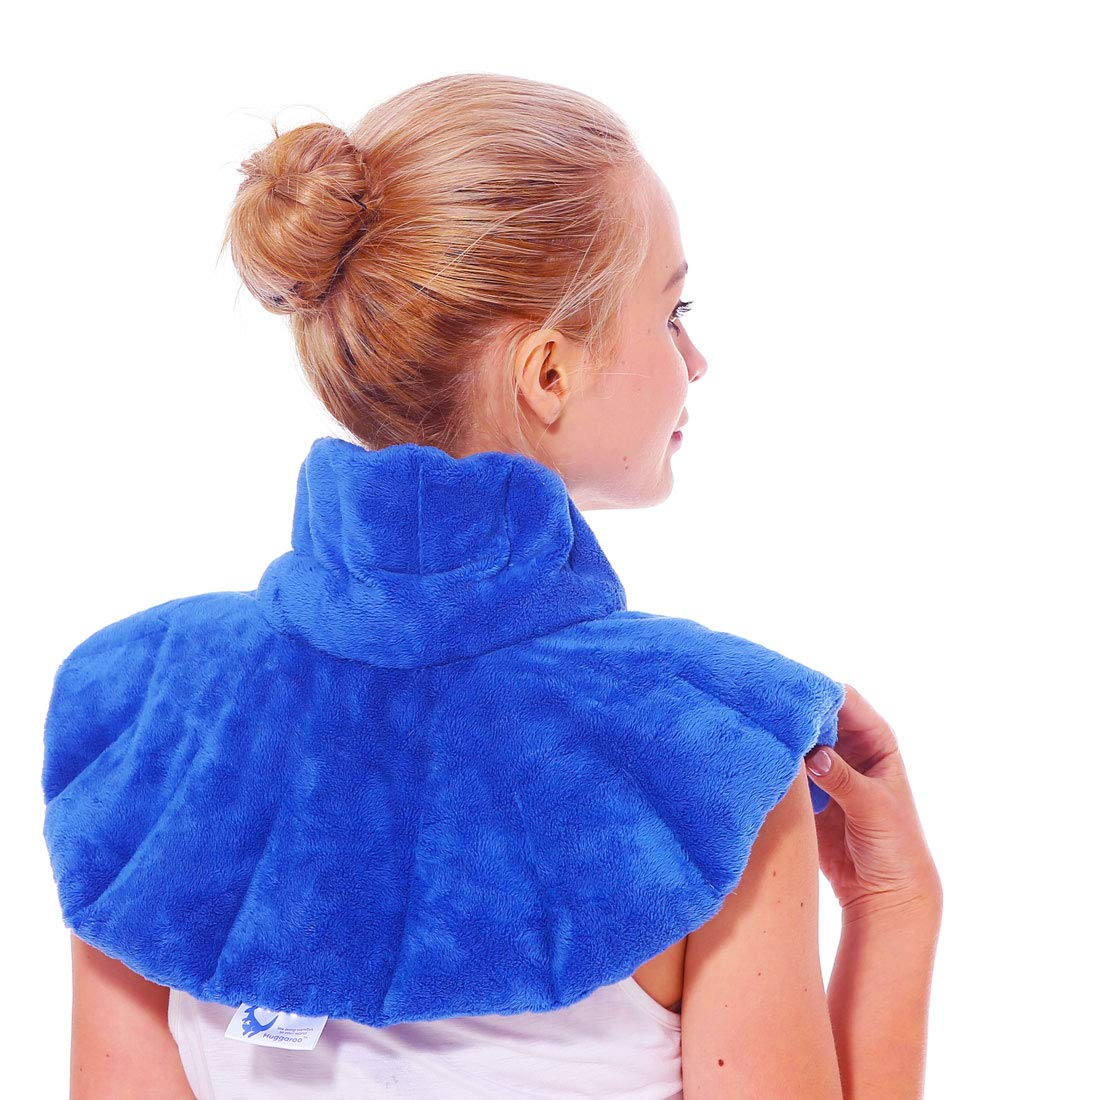 Huggaroo Microwavable Neck Wrap - Moist Heating Pad and Cold Compress - Use Hot or Cold for Neck Pain Relief, Muscle Relaxation, Migraine Relief by Huggaroo